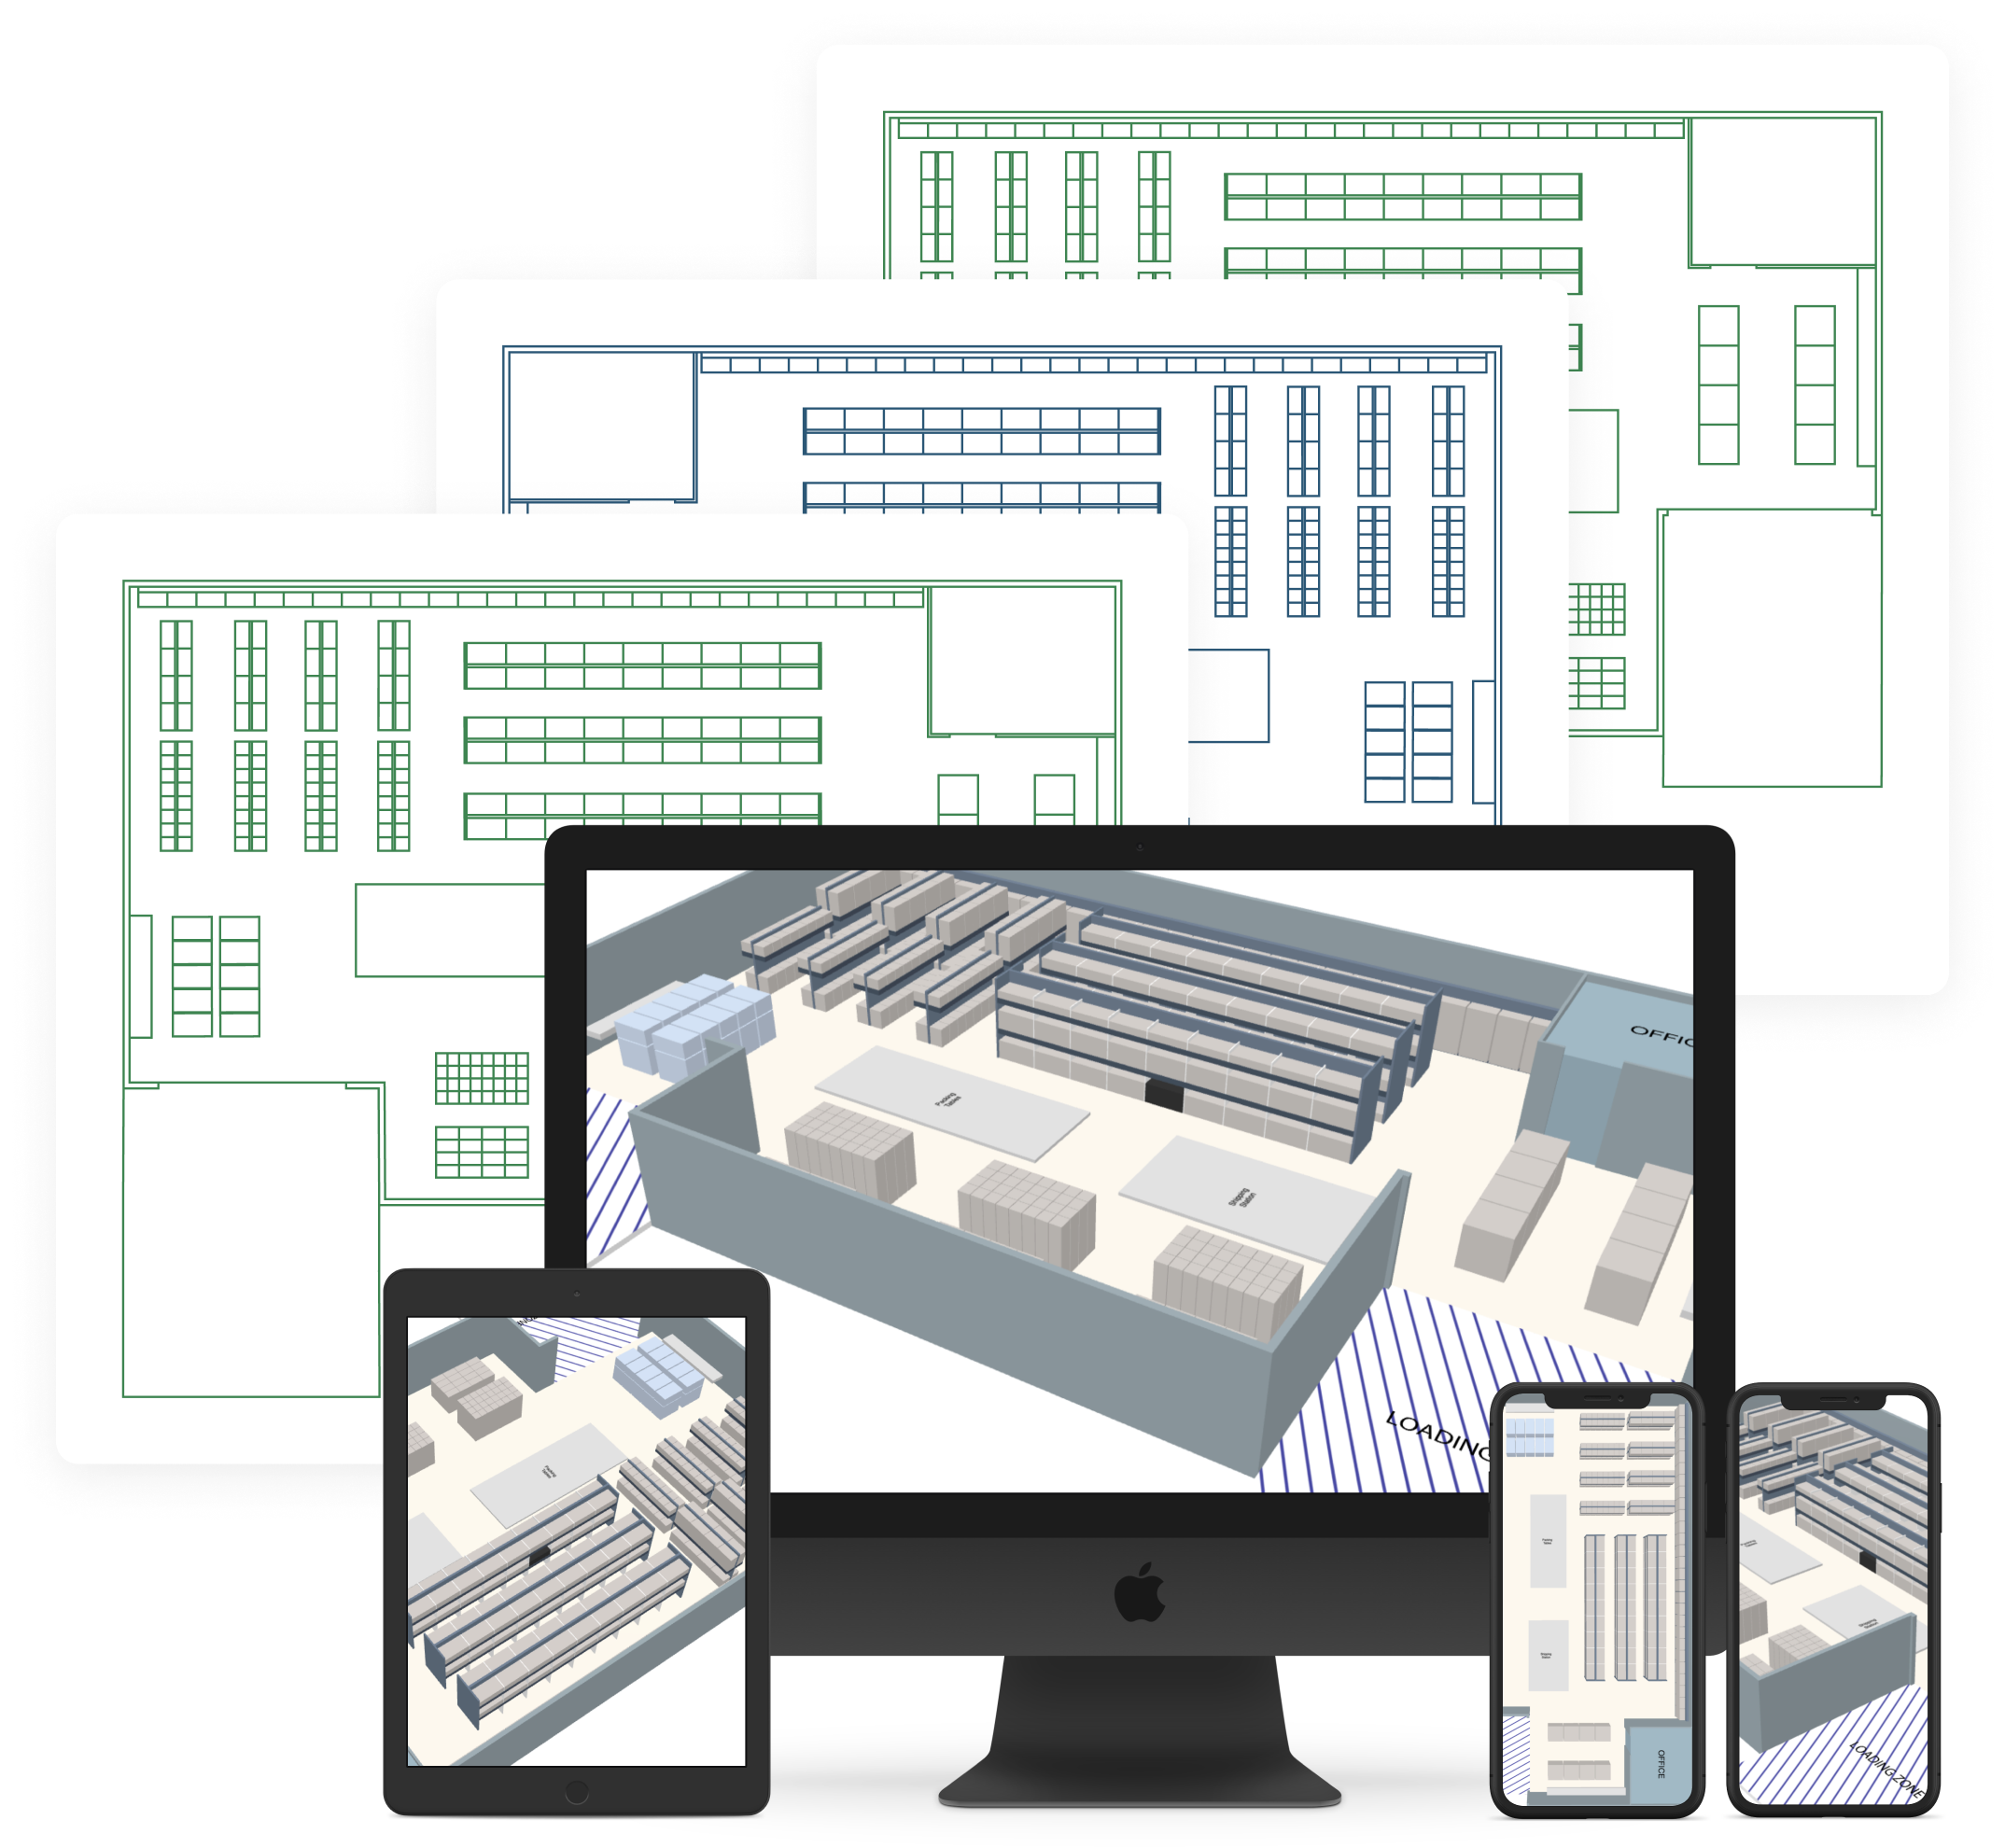 warehouse floor plan to assets